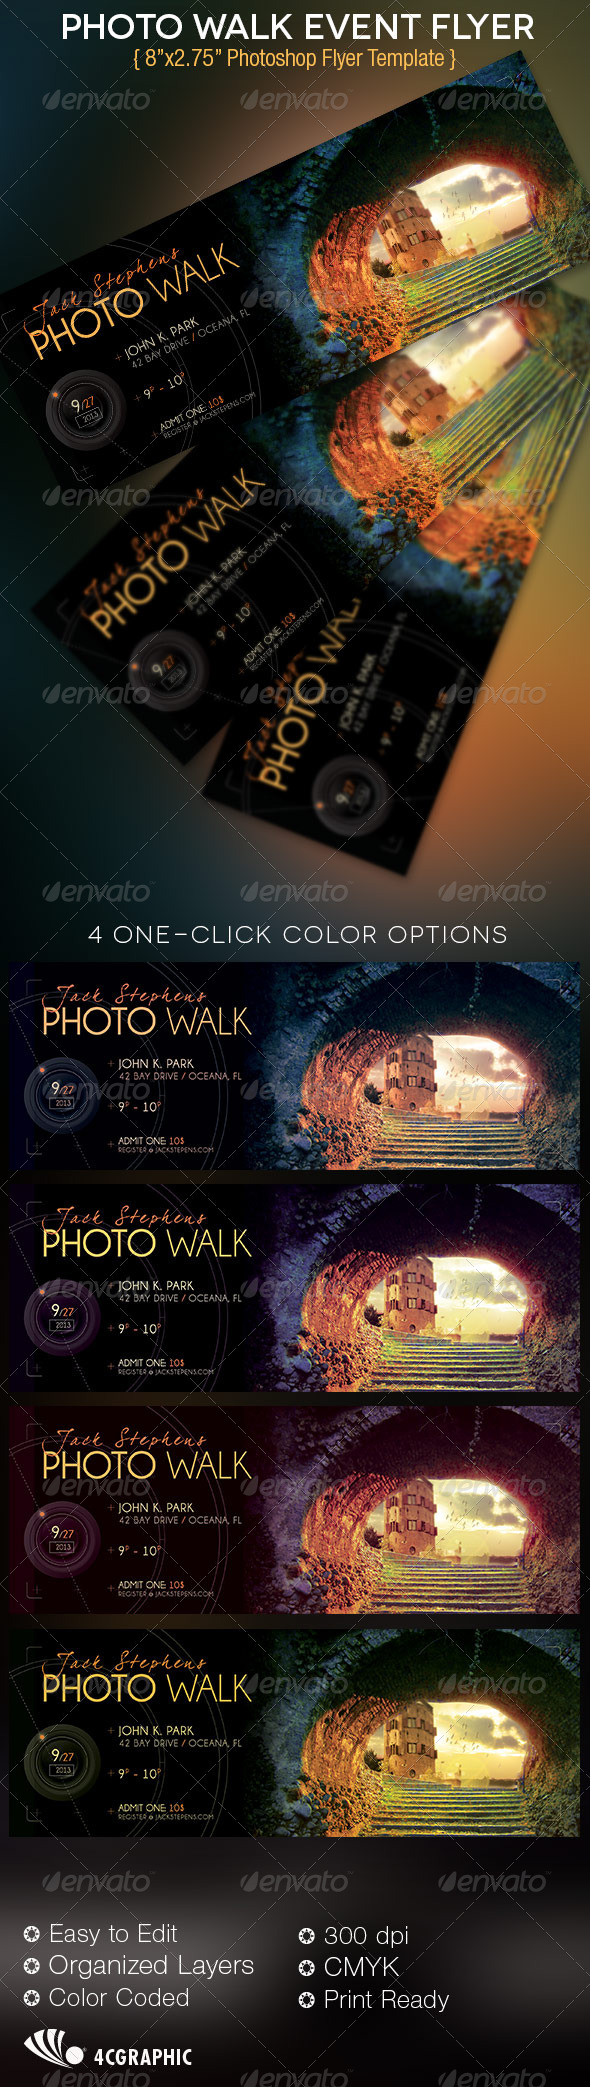 Photo Walk Event Flyer Template - Events Flyers